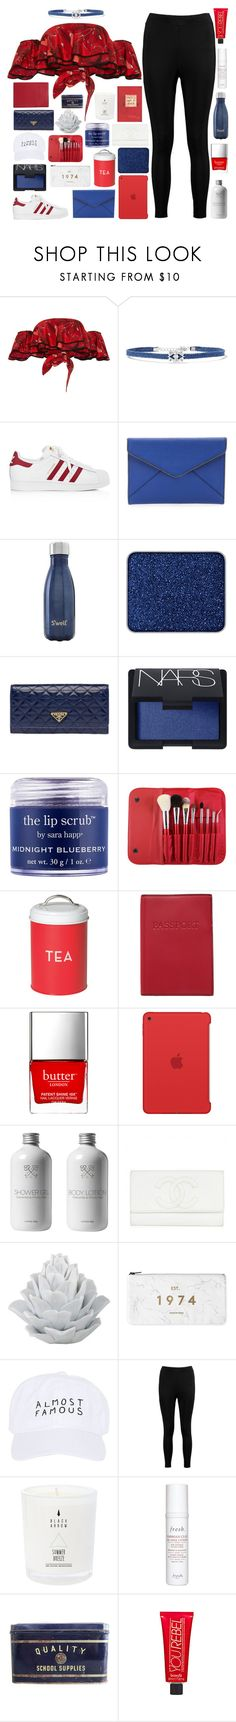 """You Light Me Up Inside Like The Fourth Of July"" by just-a-reject-x ❤ liked on Polyvore featuring Johanna Ortiz, Noir Jewelry, adidas, Rebecca Minkoff, S'well, shu uemura, Prada, NARS Cosmetics, Sara Happ and Morphe"